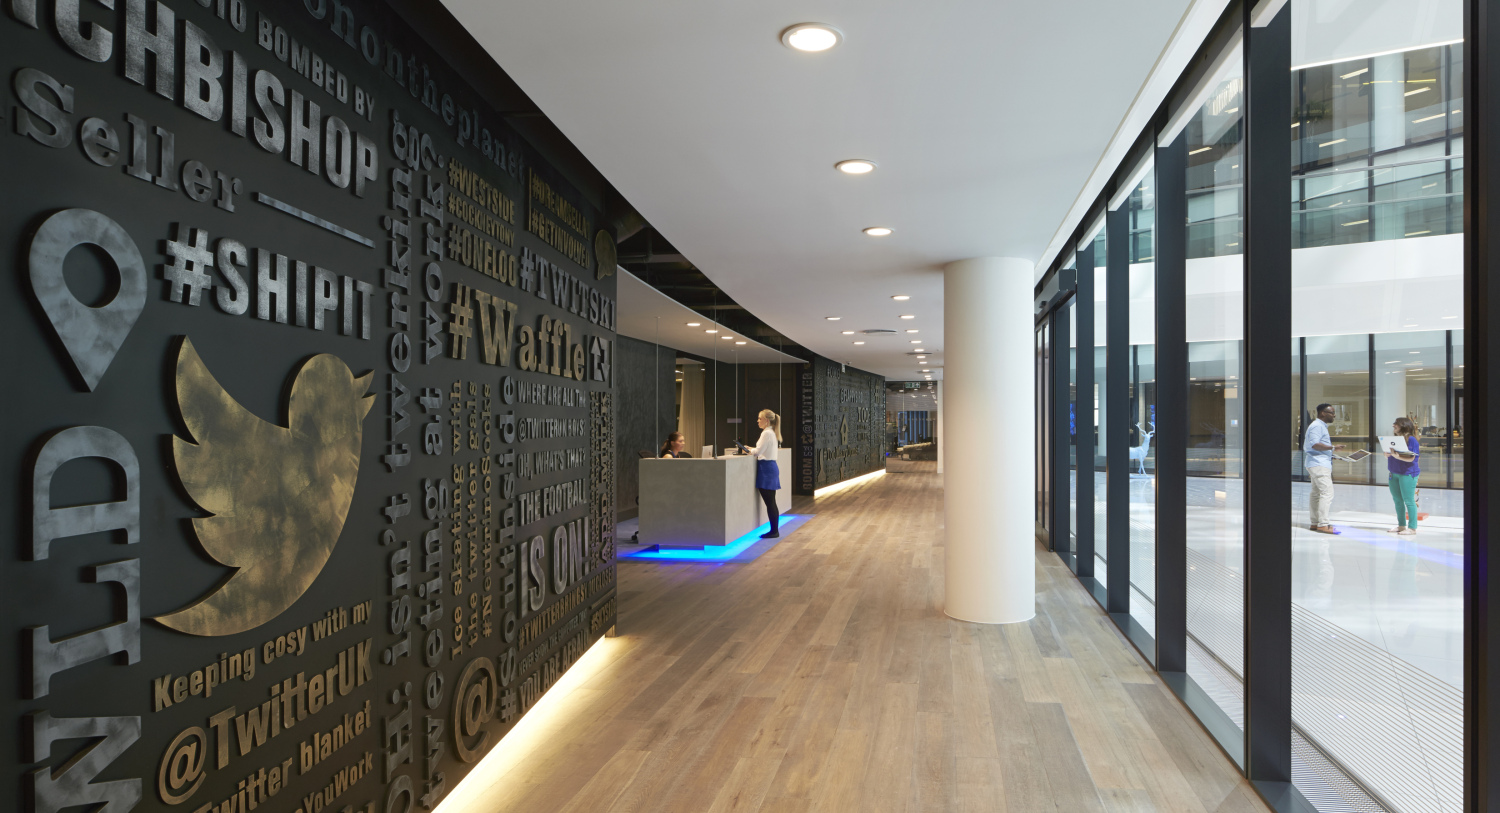 Wall with Twitter bird logo, reception desk beyond.